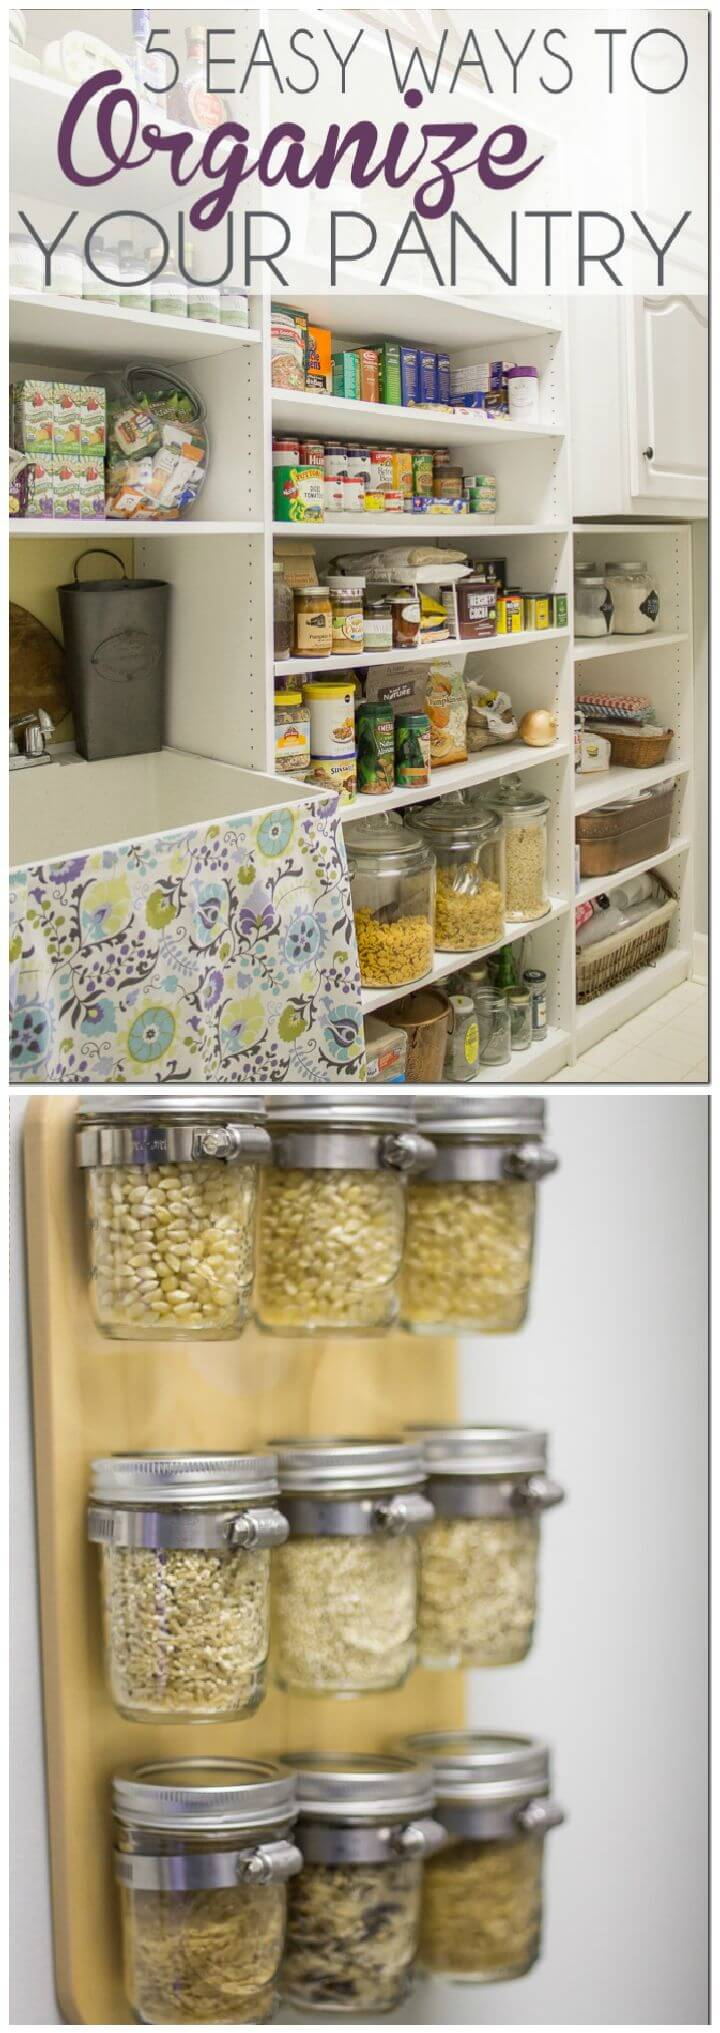 60 Best Pantry Organization Ideas Diy Page 12 Of 12